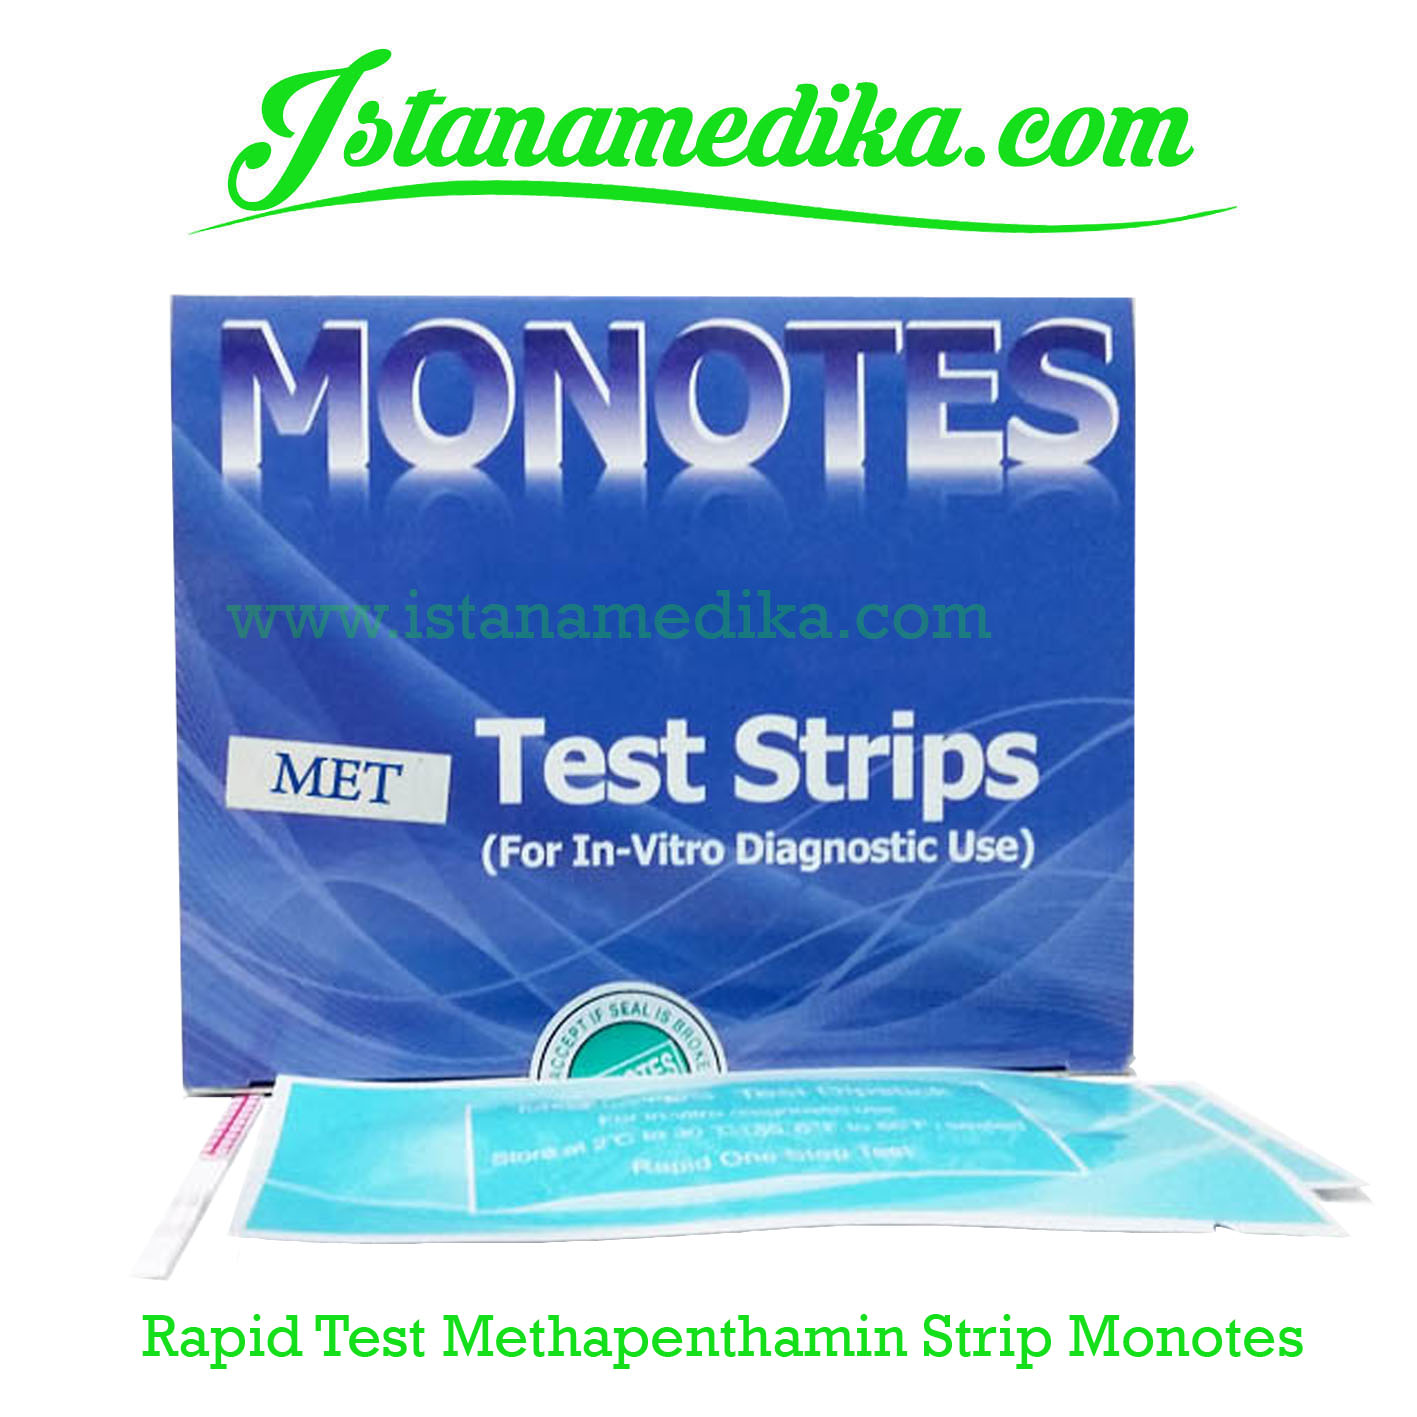 Rapid Test Methapenthamin Strip Monotes